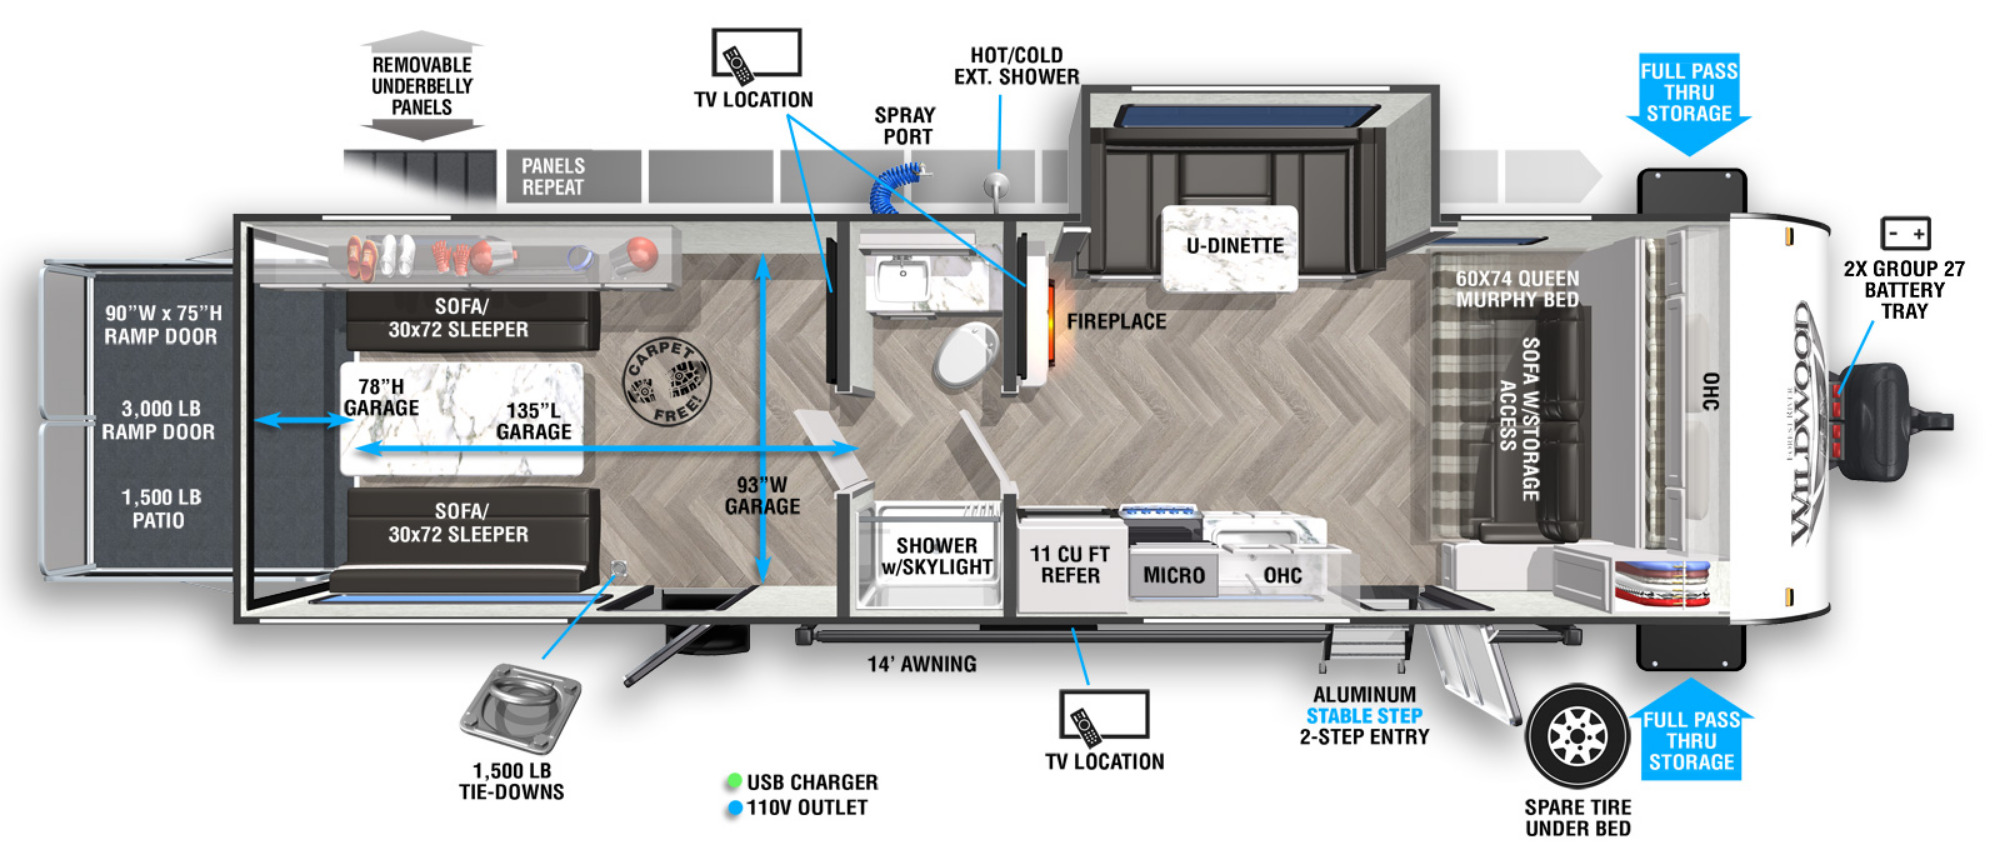 View Floor Plan for 2022 FOREST RIVER WILDWOOD FSX 280RTX